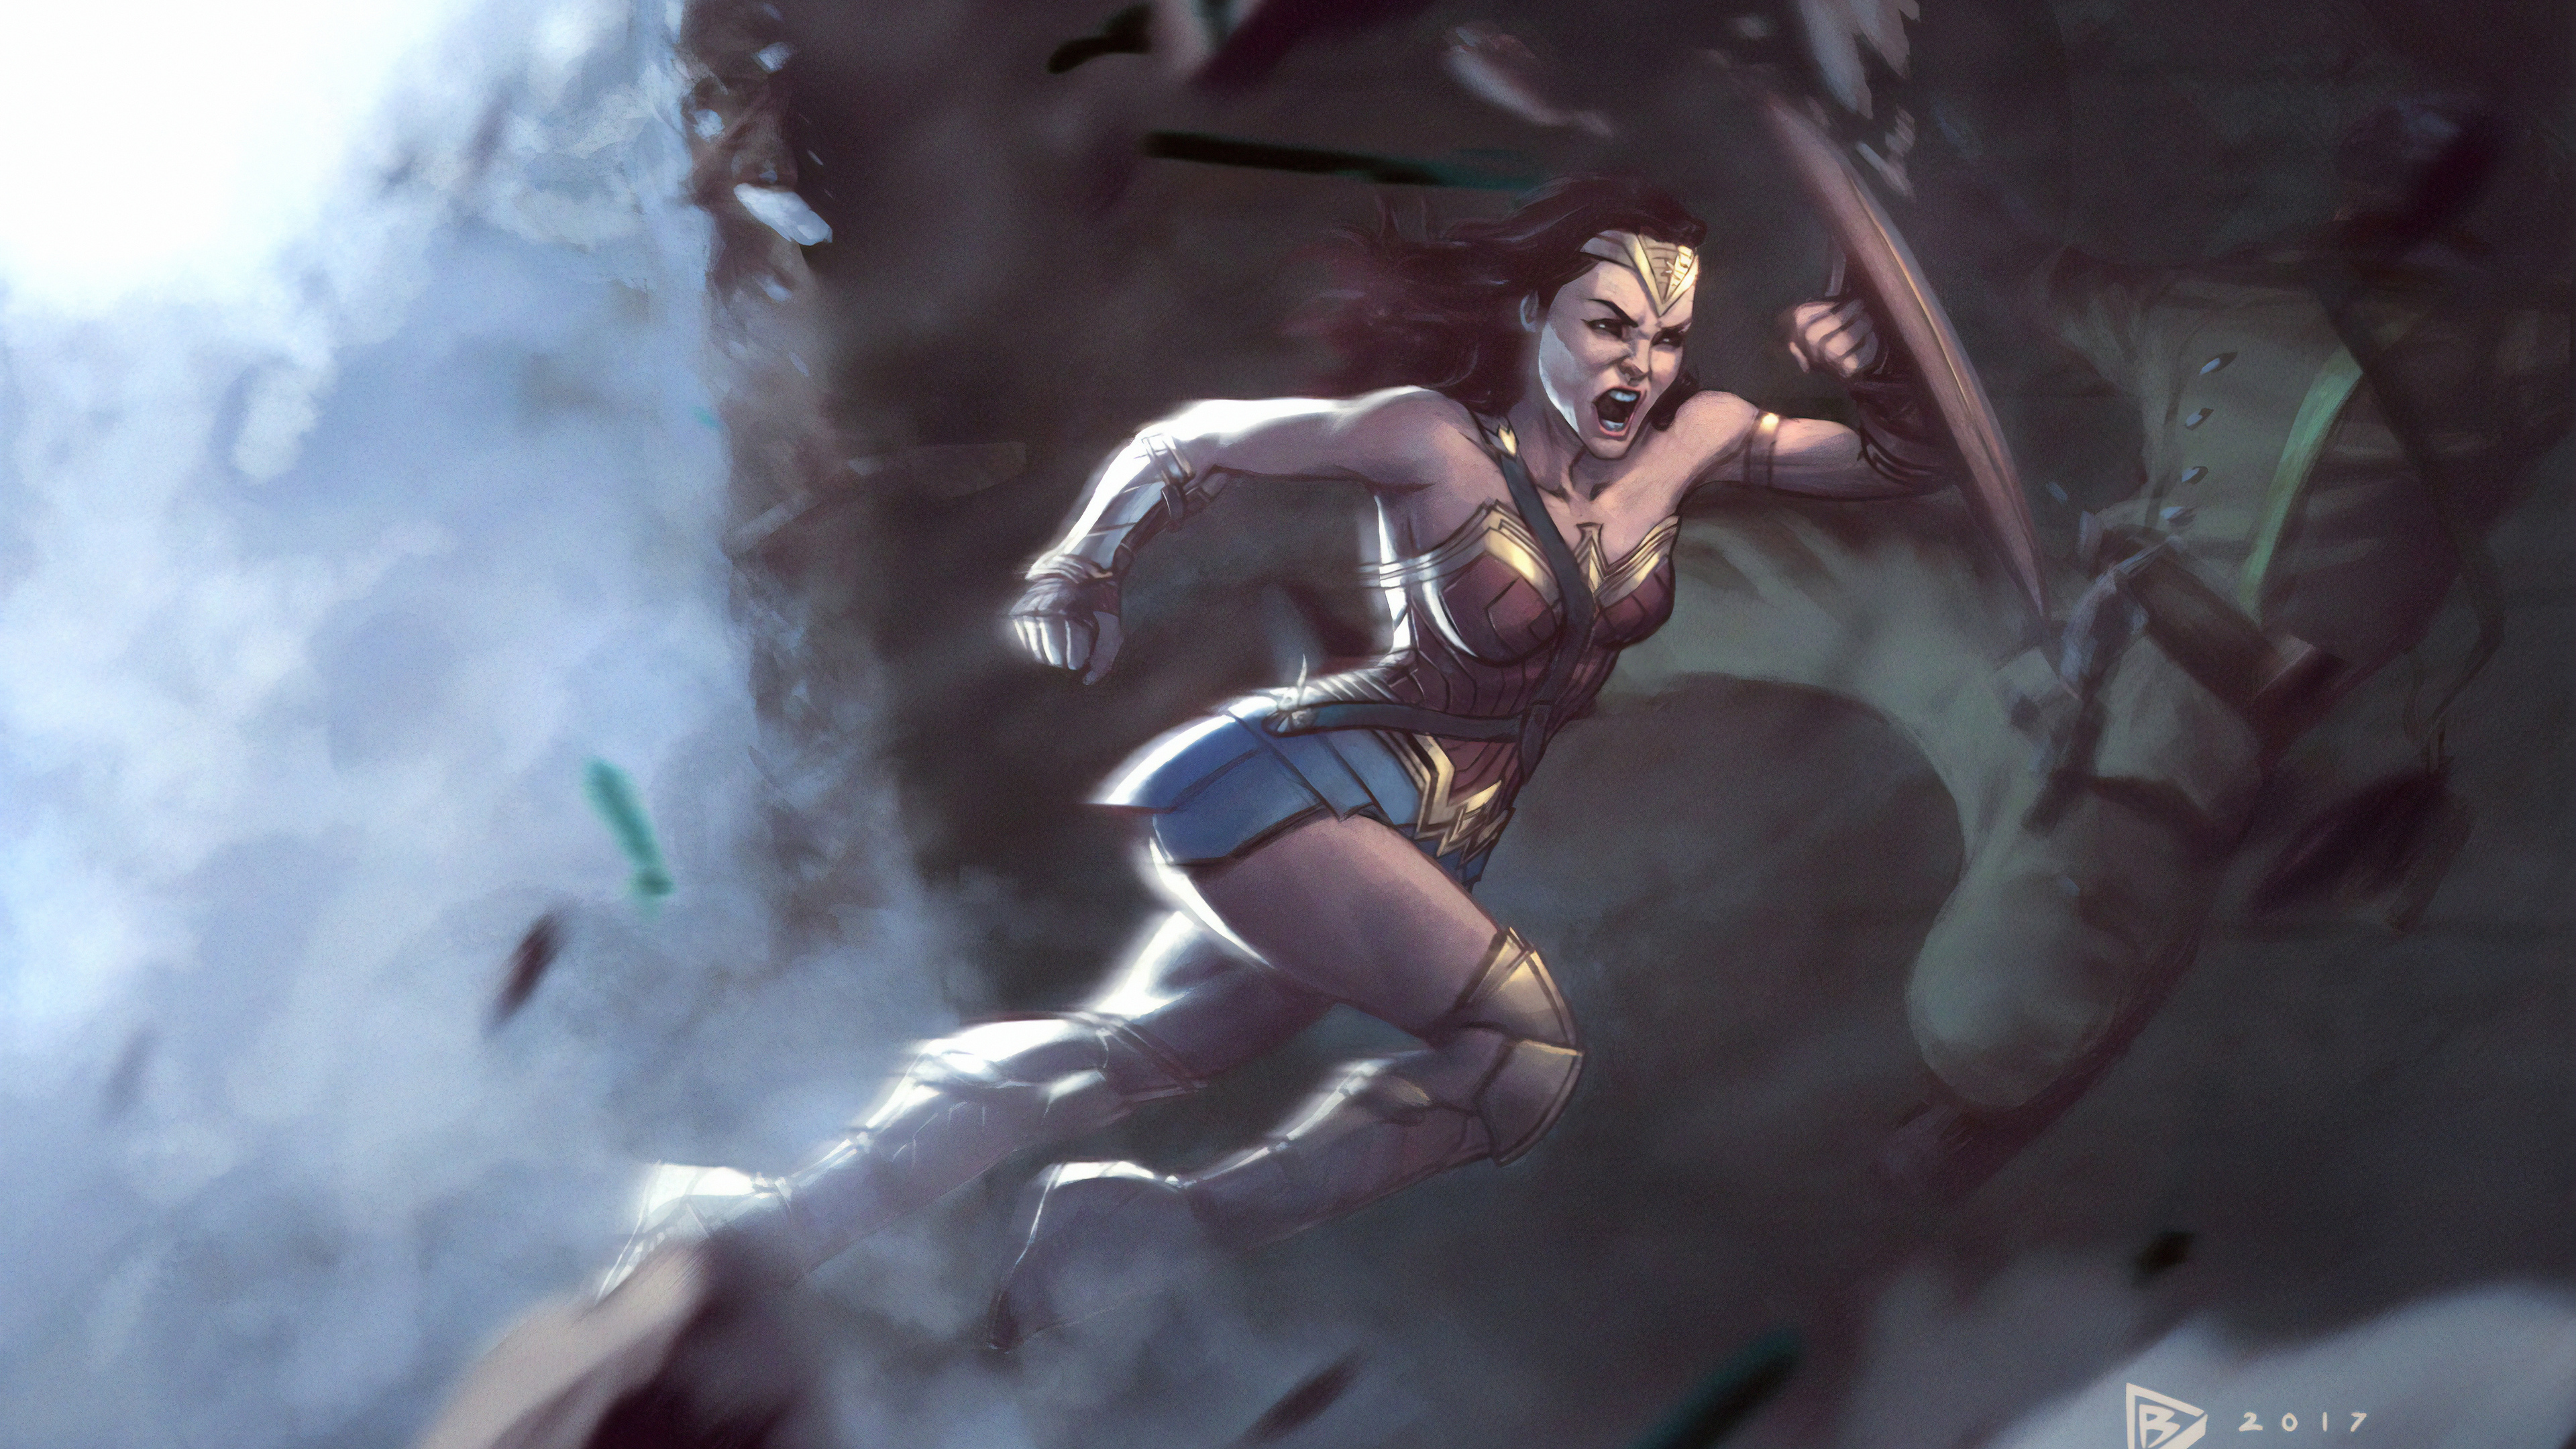 wonder woman roar 1570394645 - Wonder Woman Roar - wonder woman wallpapers, superheroes wallpapers, hd-wallpapers, digital art wallpapers, artwork wallpapers, 4k-wallpapers